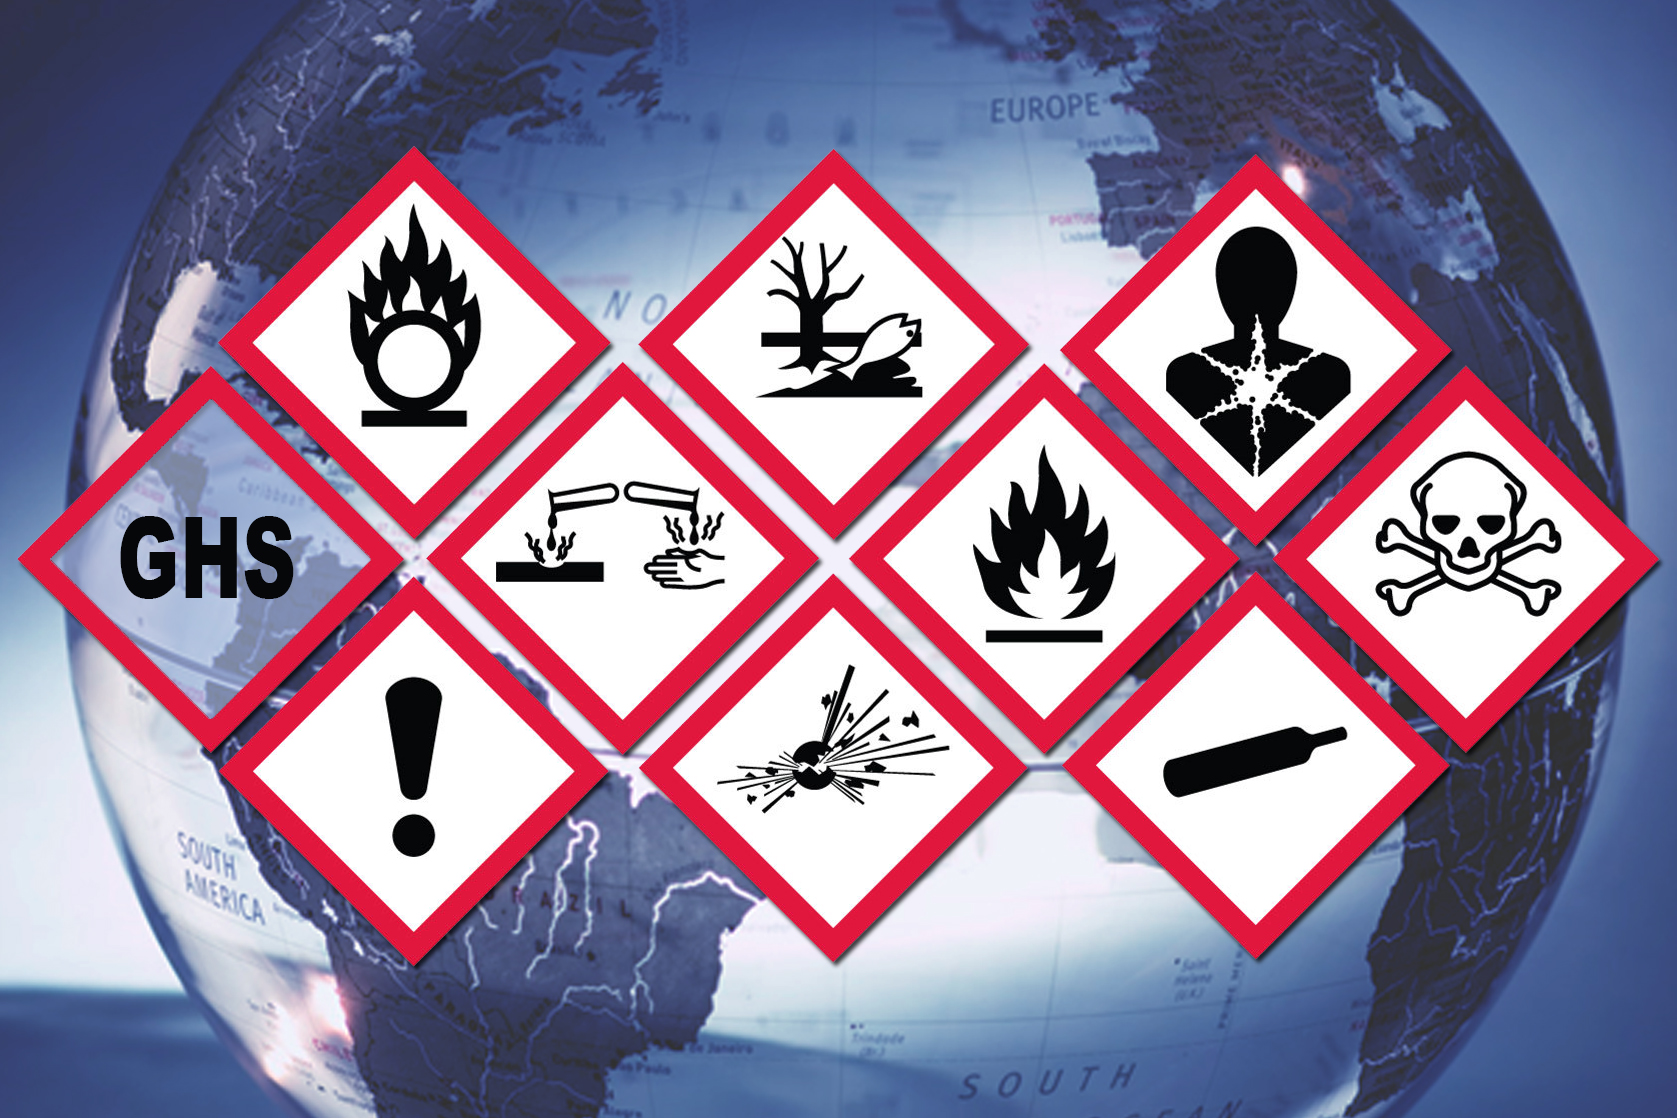 The significance of Safety Signs